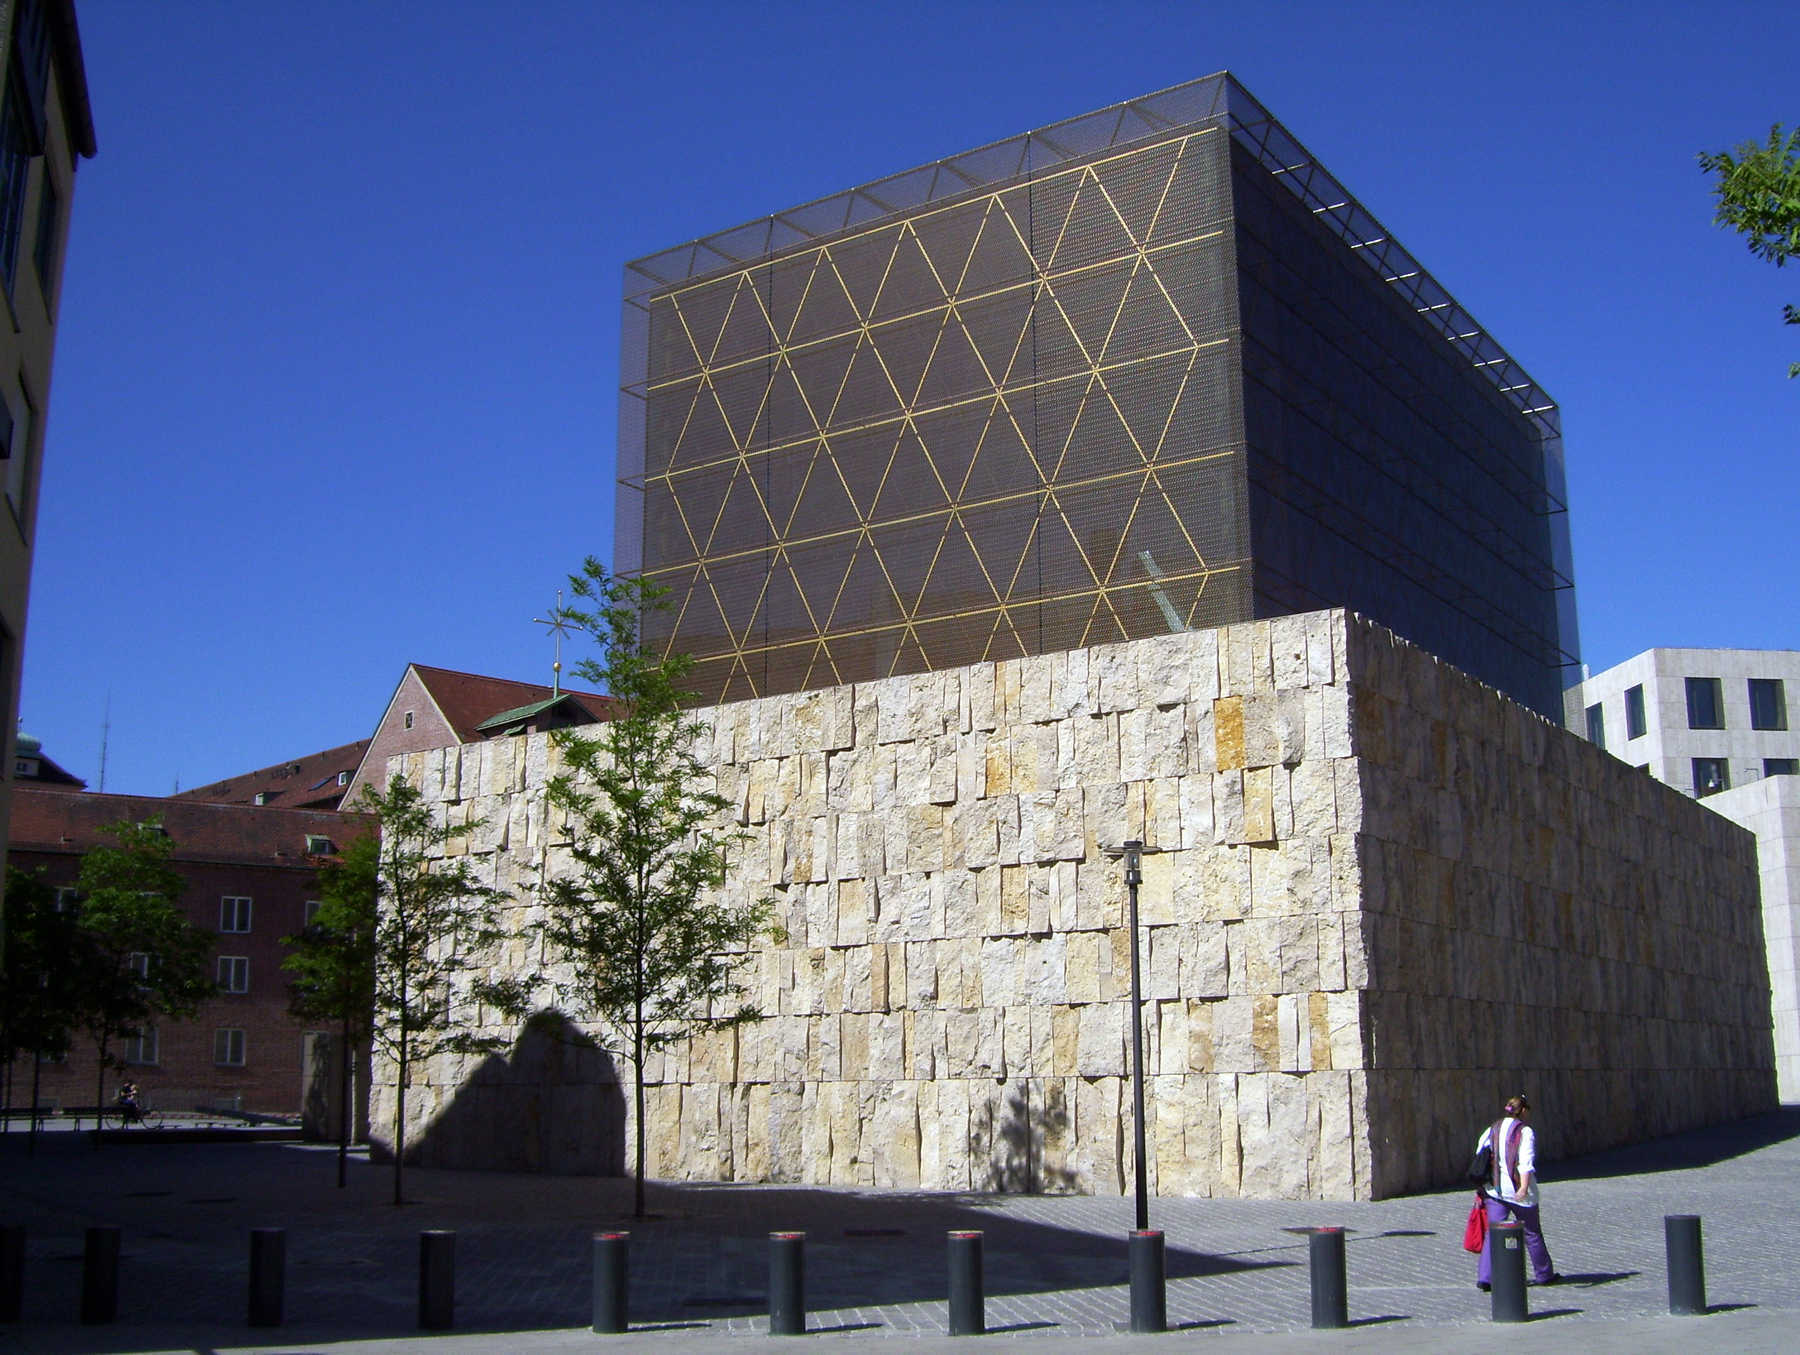 New Synagogue, Munich, Bavaria, Germany